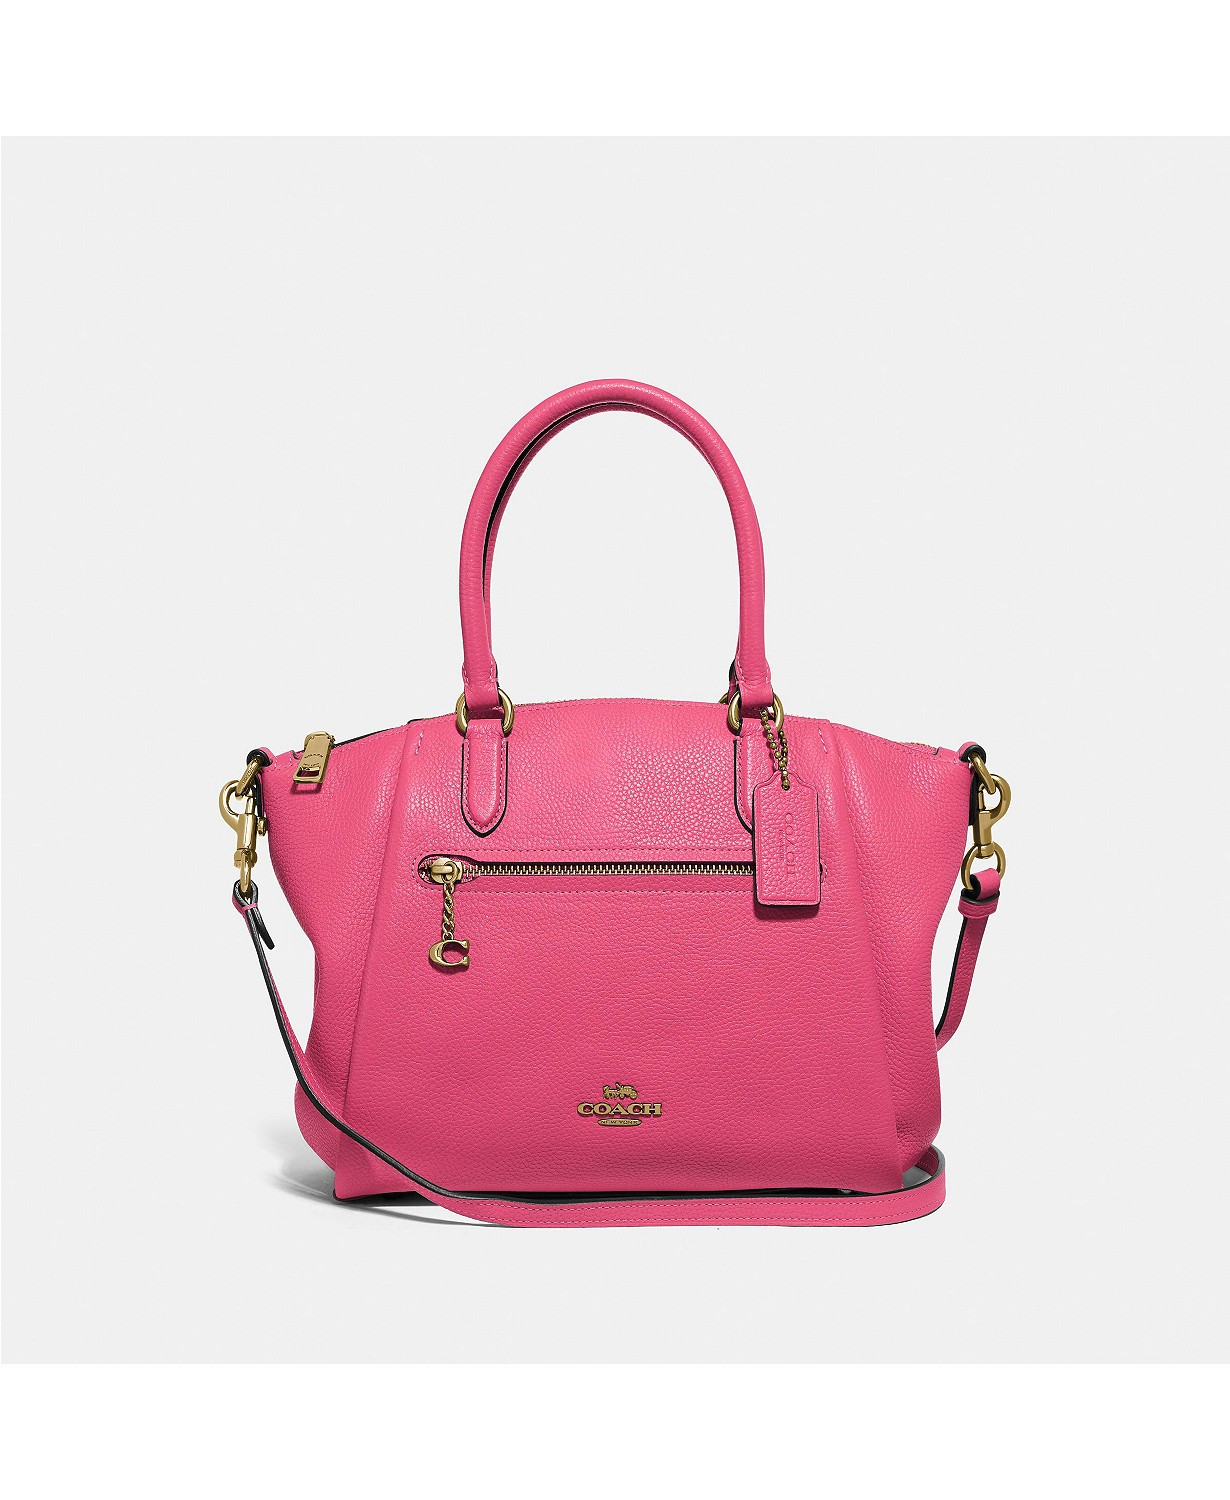 COACH Polished Pebble Leather Elise Small Satchel – NOW ONLY 7.93! LAST ACT! Originally 5!